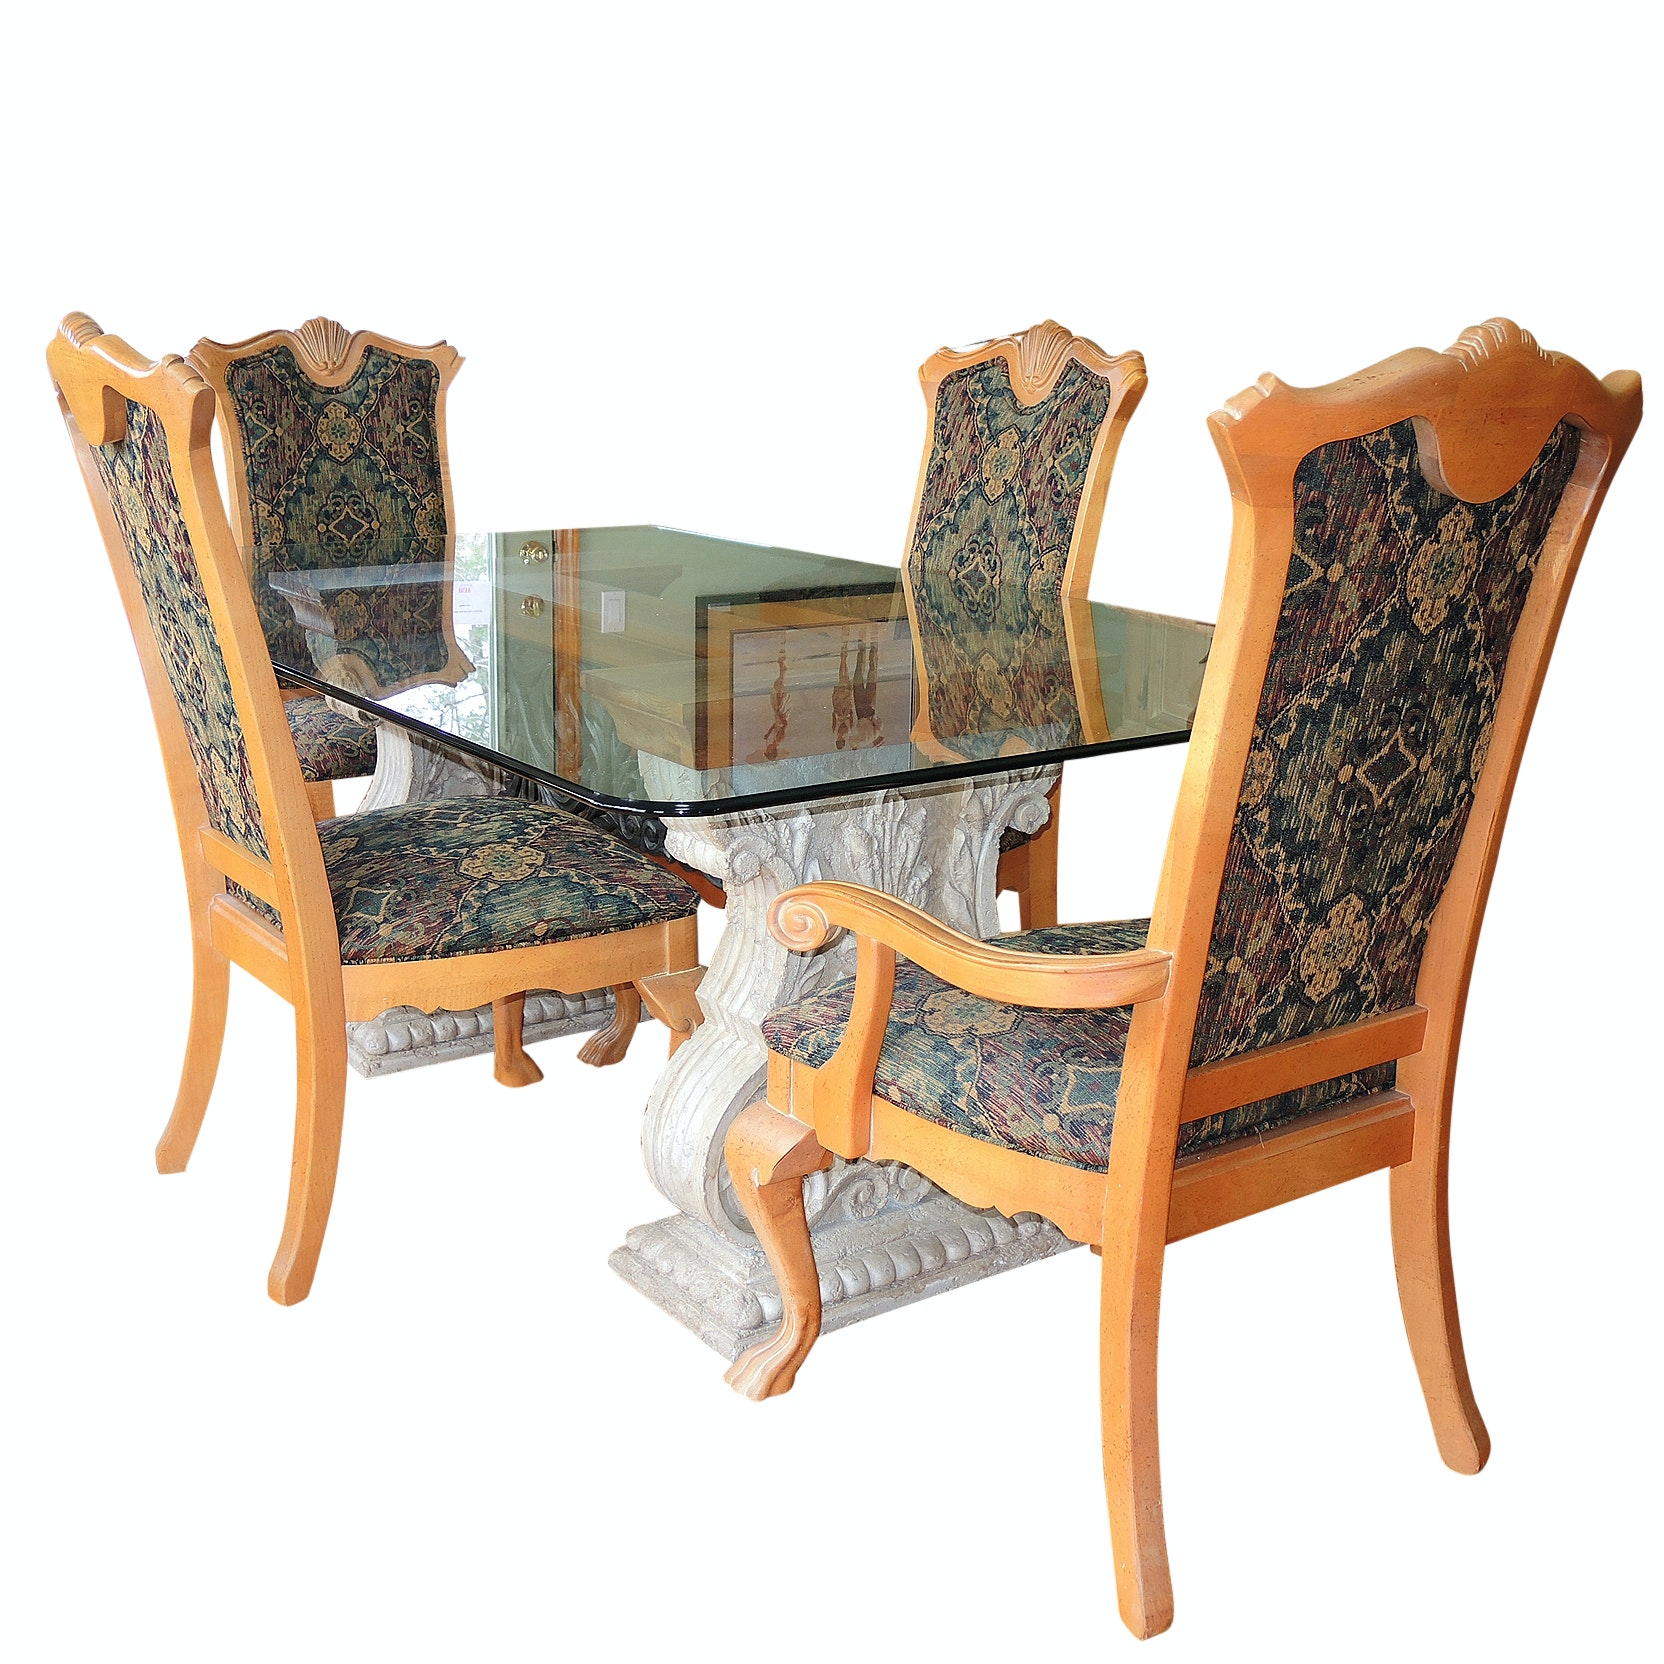 Thomasville Glass Top Dining Table and Chairs, Contemporary